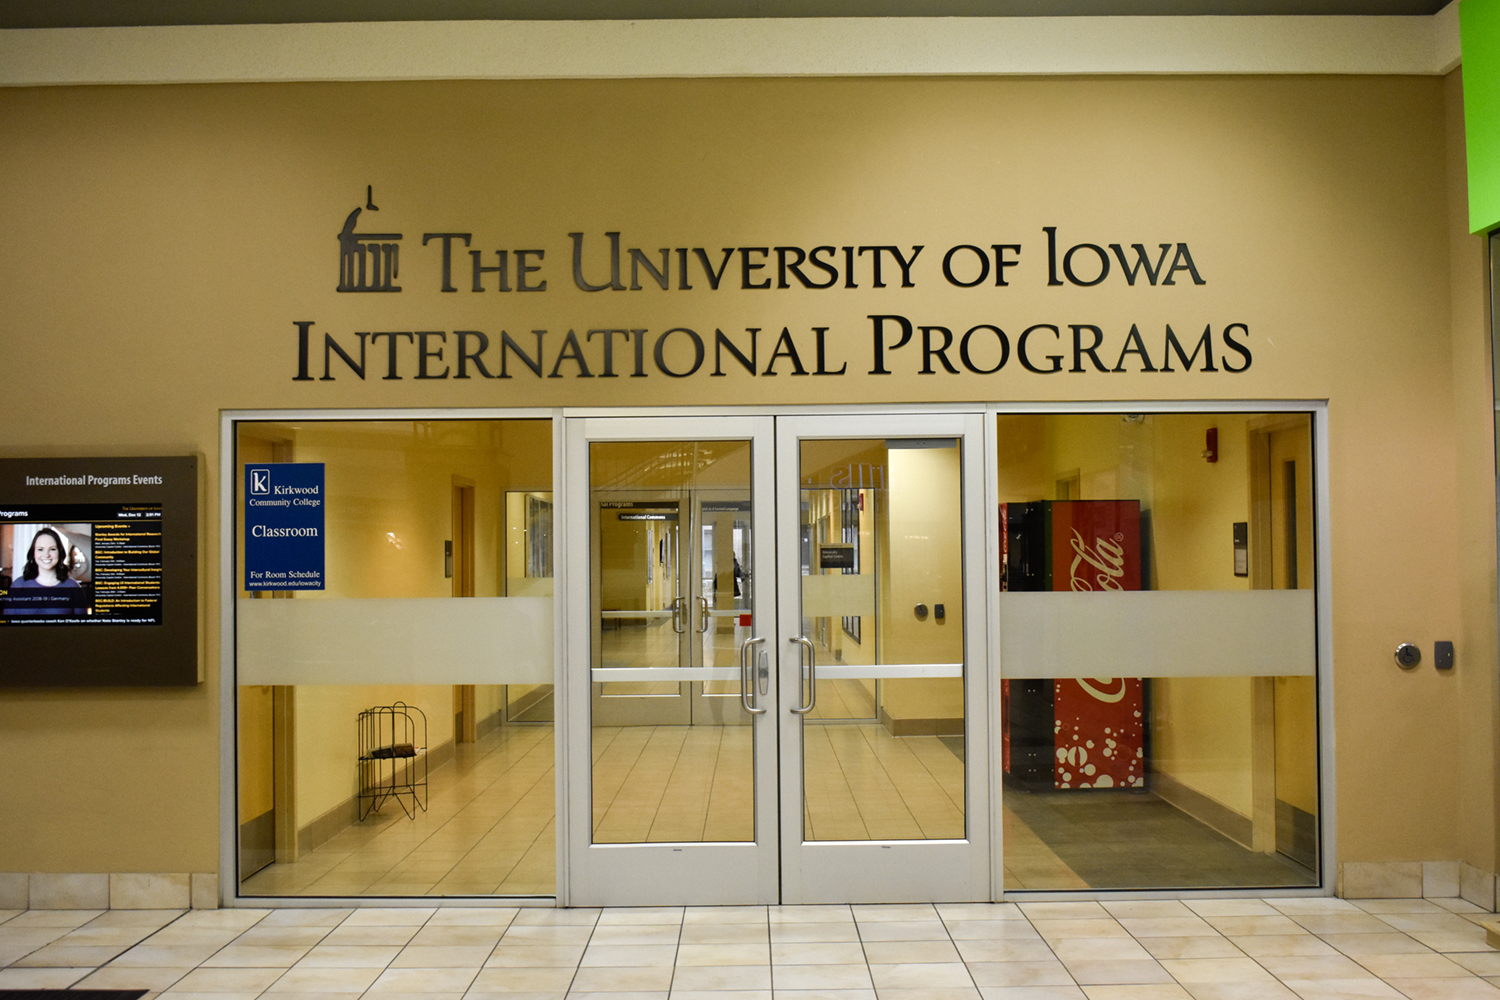 The University of Iowa International Programs office is seen at the University Capitol Centre on Wednesday, December 12, 2018